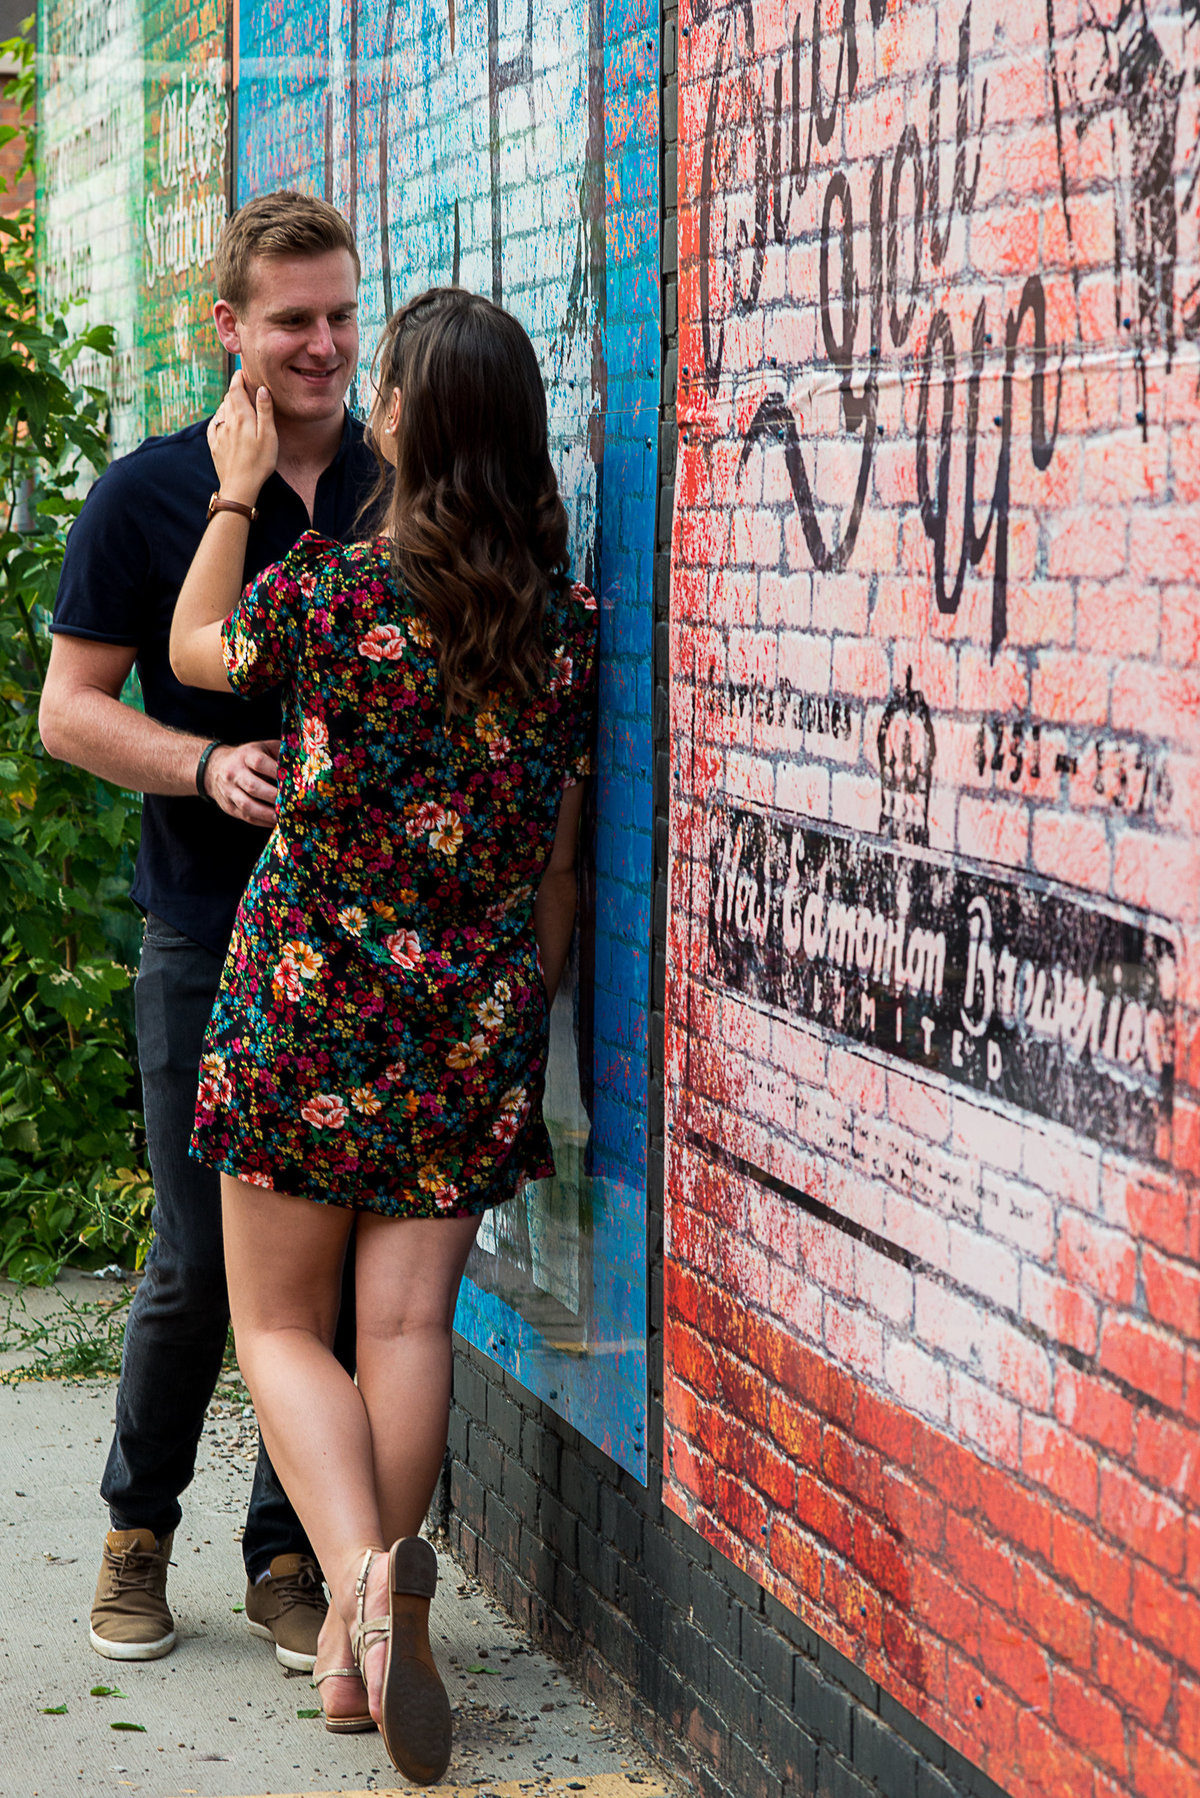 Carla-Lehman-Photography-Camrose-Edmonton-Wedding-Engagement-Photographer-5